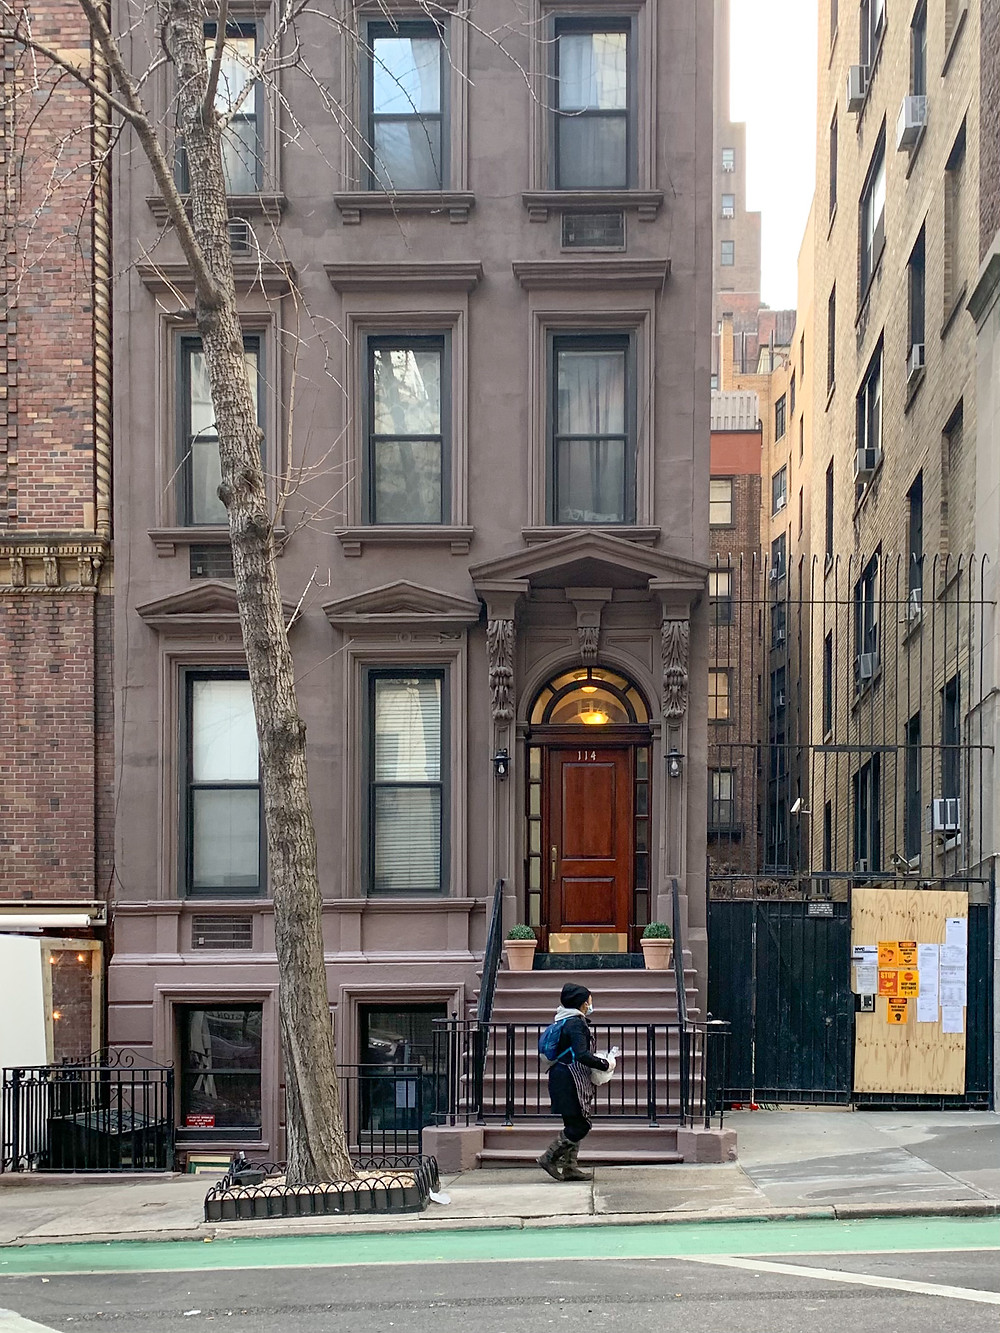 East 39th street historic homes of New York Edith Wharton's new York the Age of Innocence